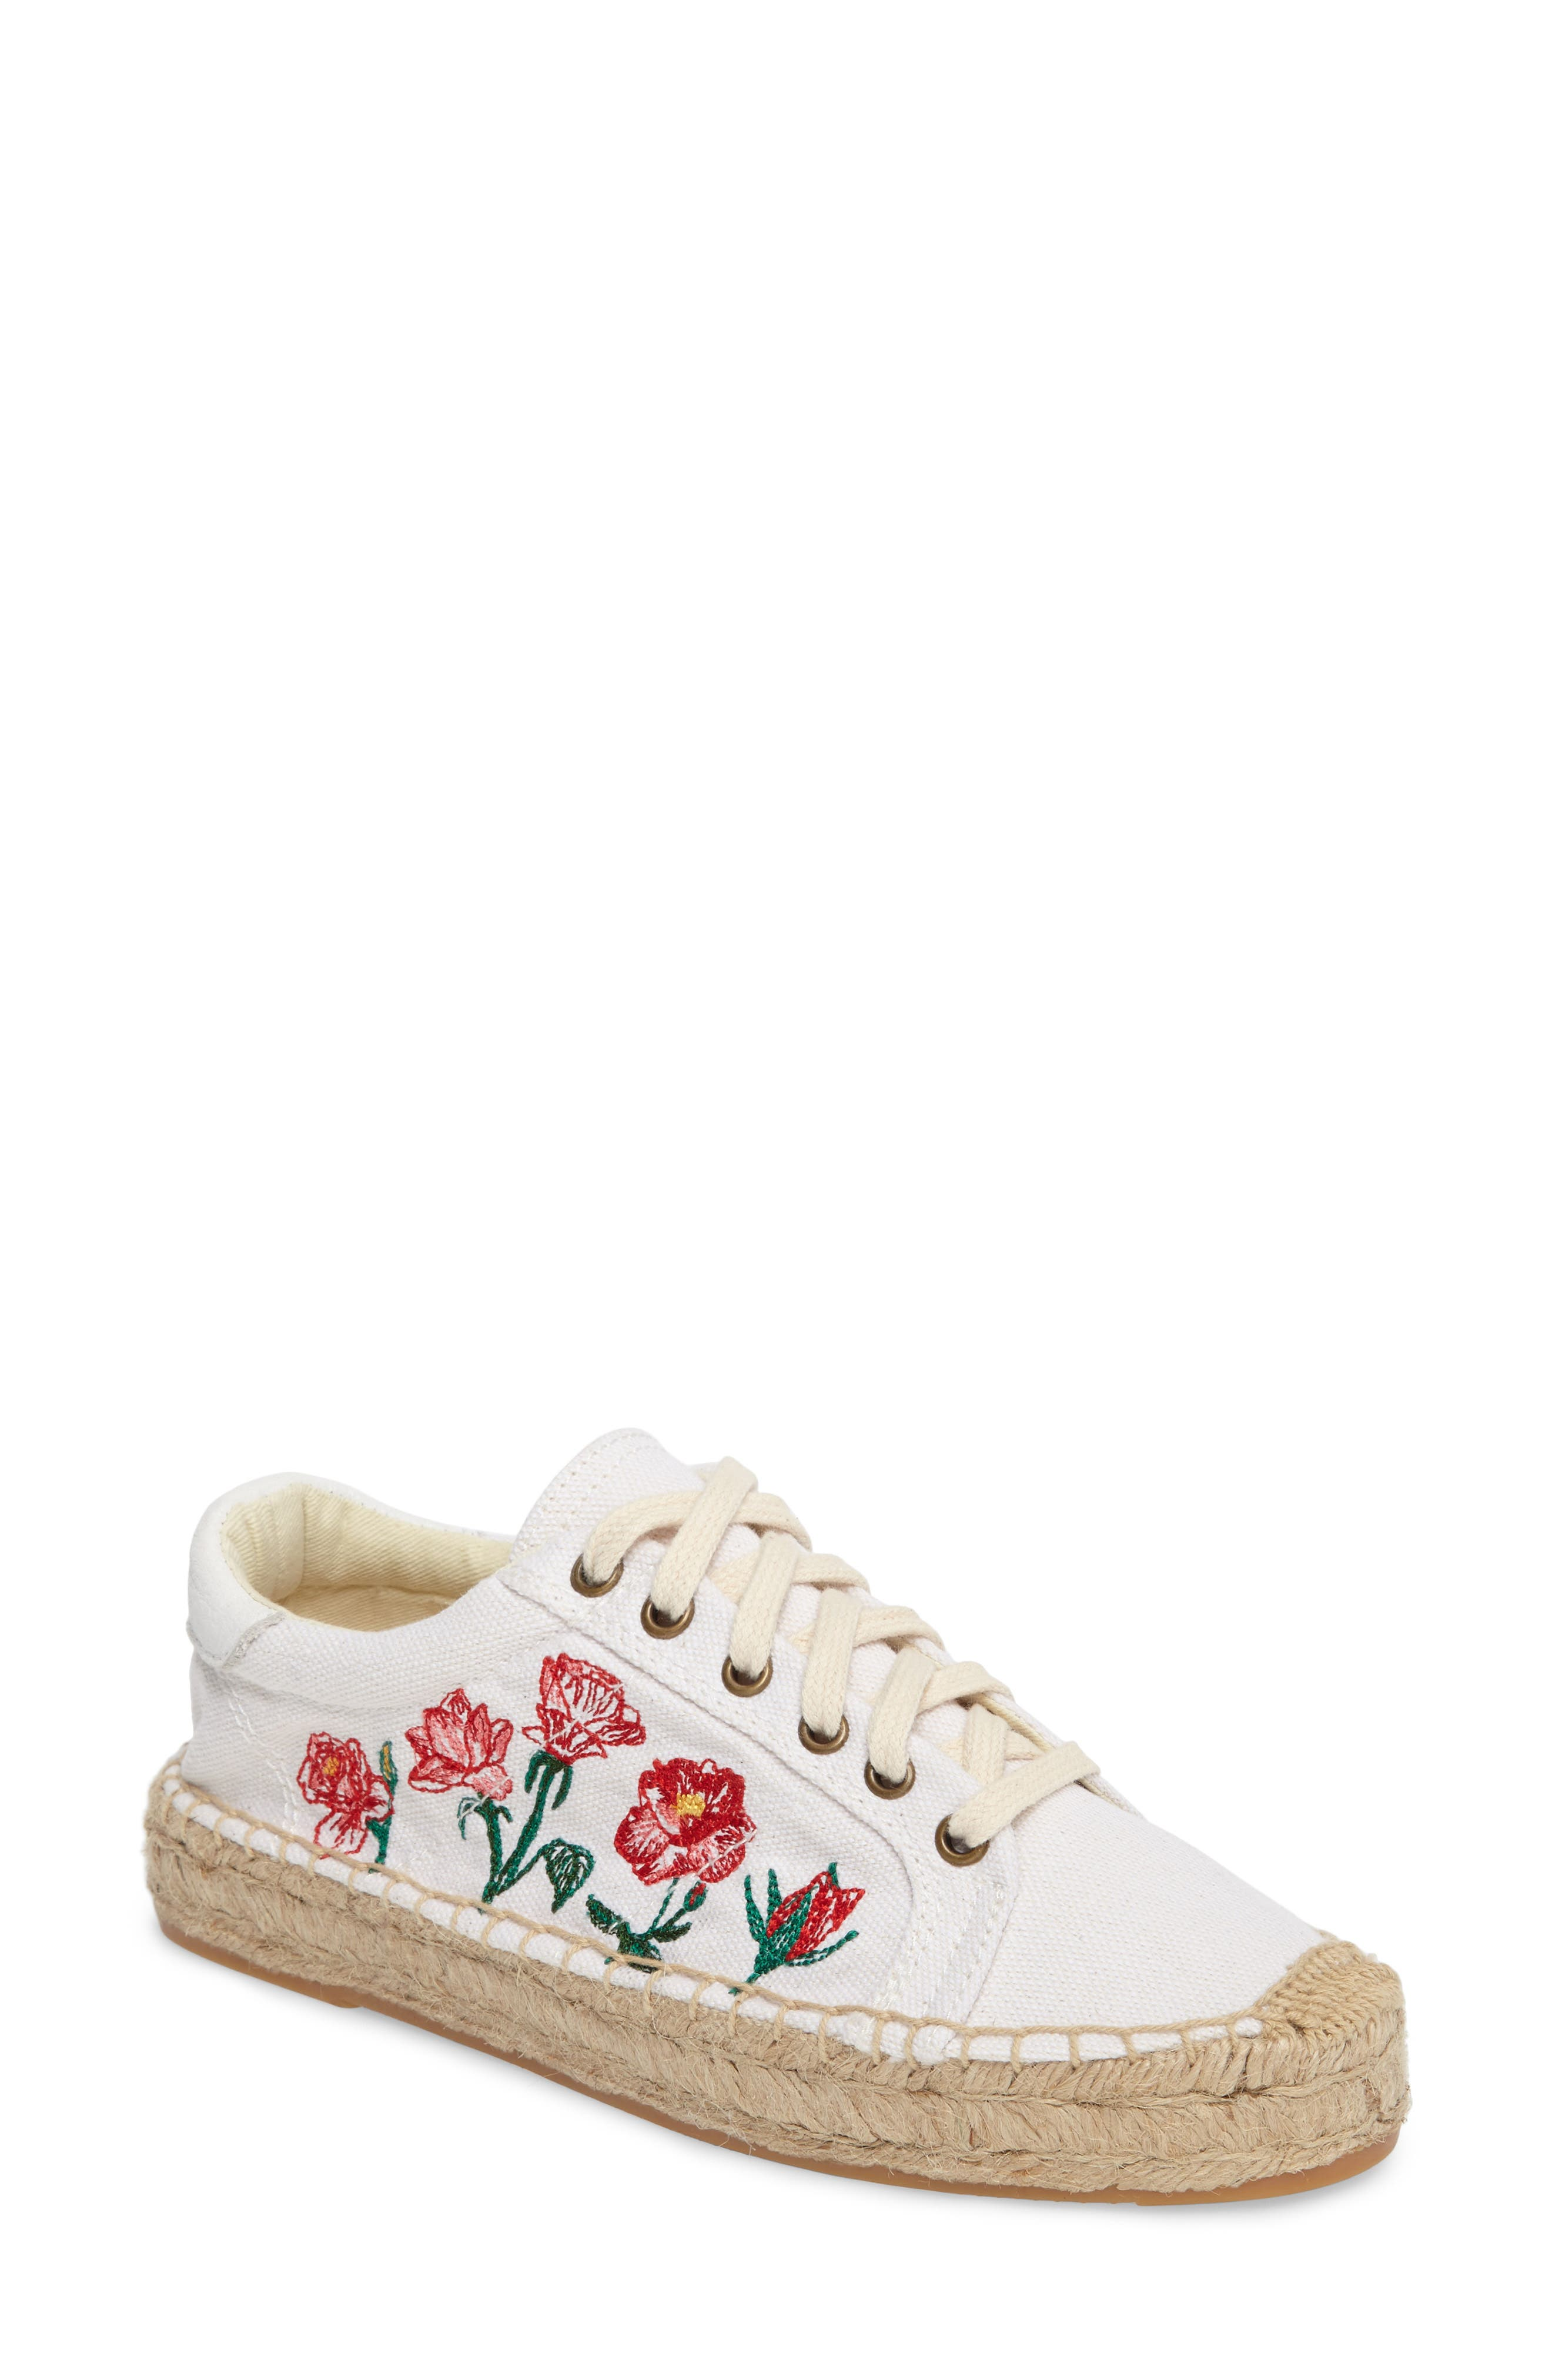 Floral Embroidered Espadrille Sneaker,                             Main thumbnail 1, color,                             100